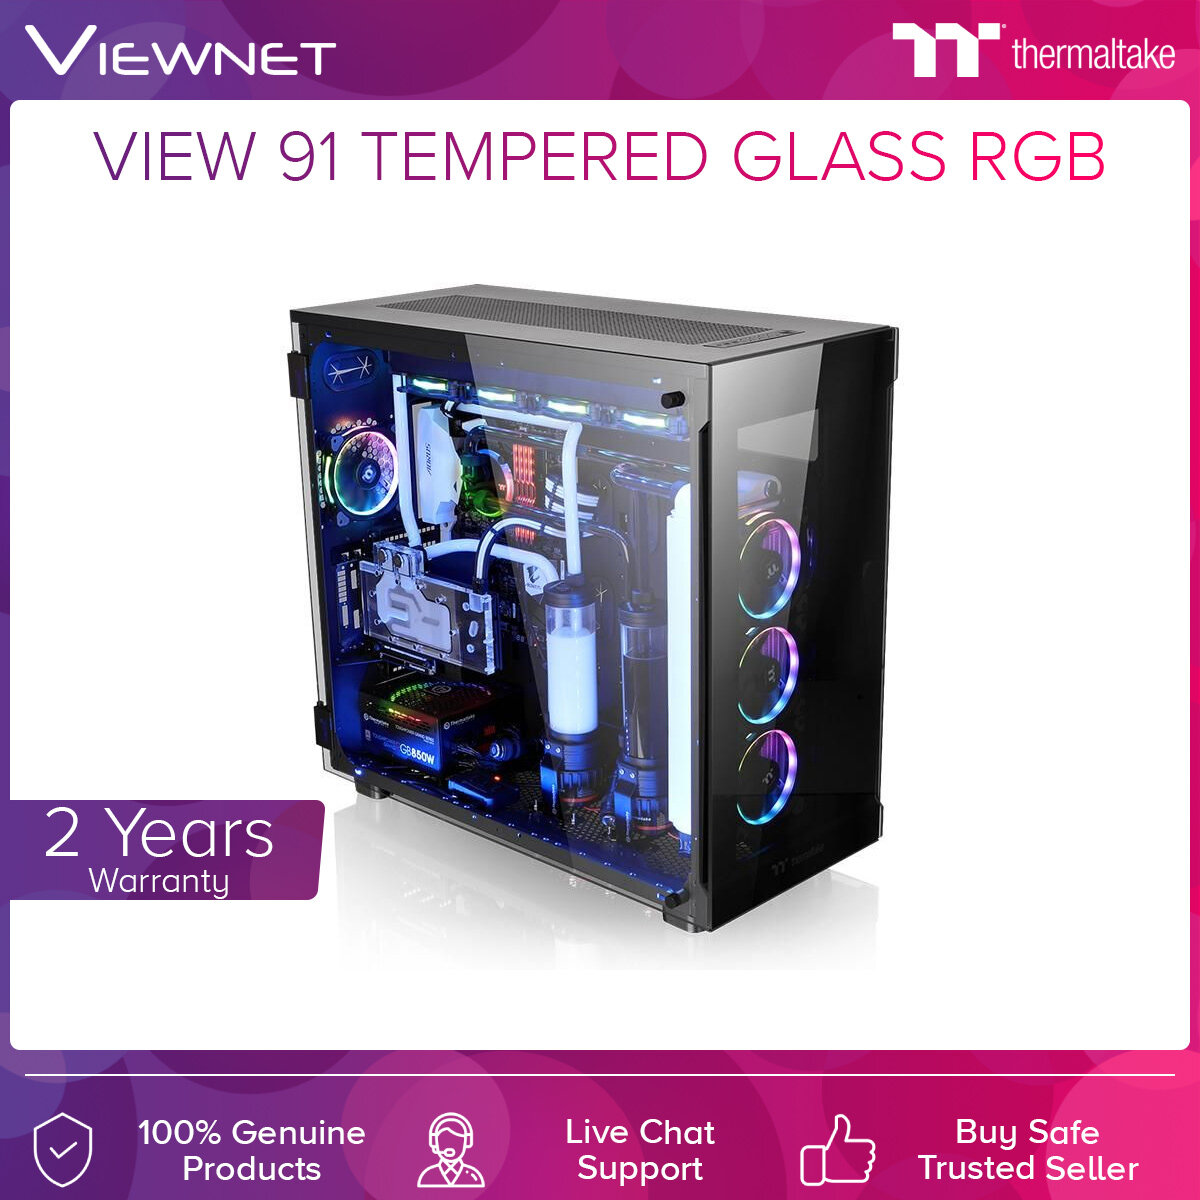 Thermaltake View 91 Tempered Glass RGB Super Tower Black Casing (CA-1L9-00F1WN-0)